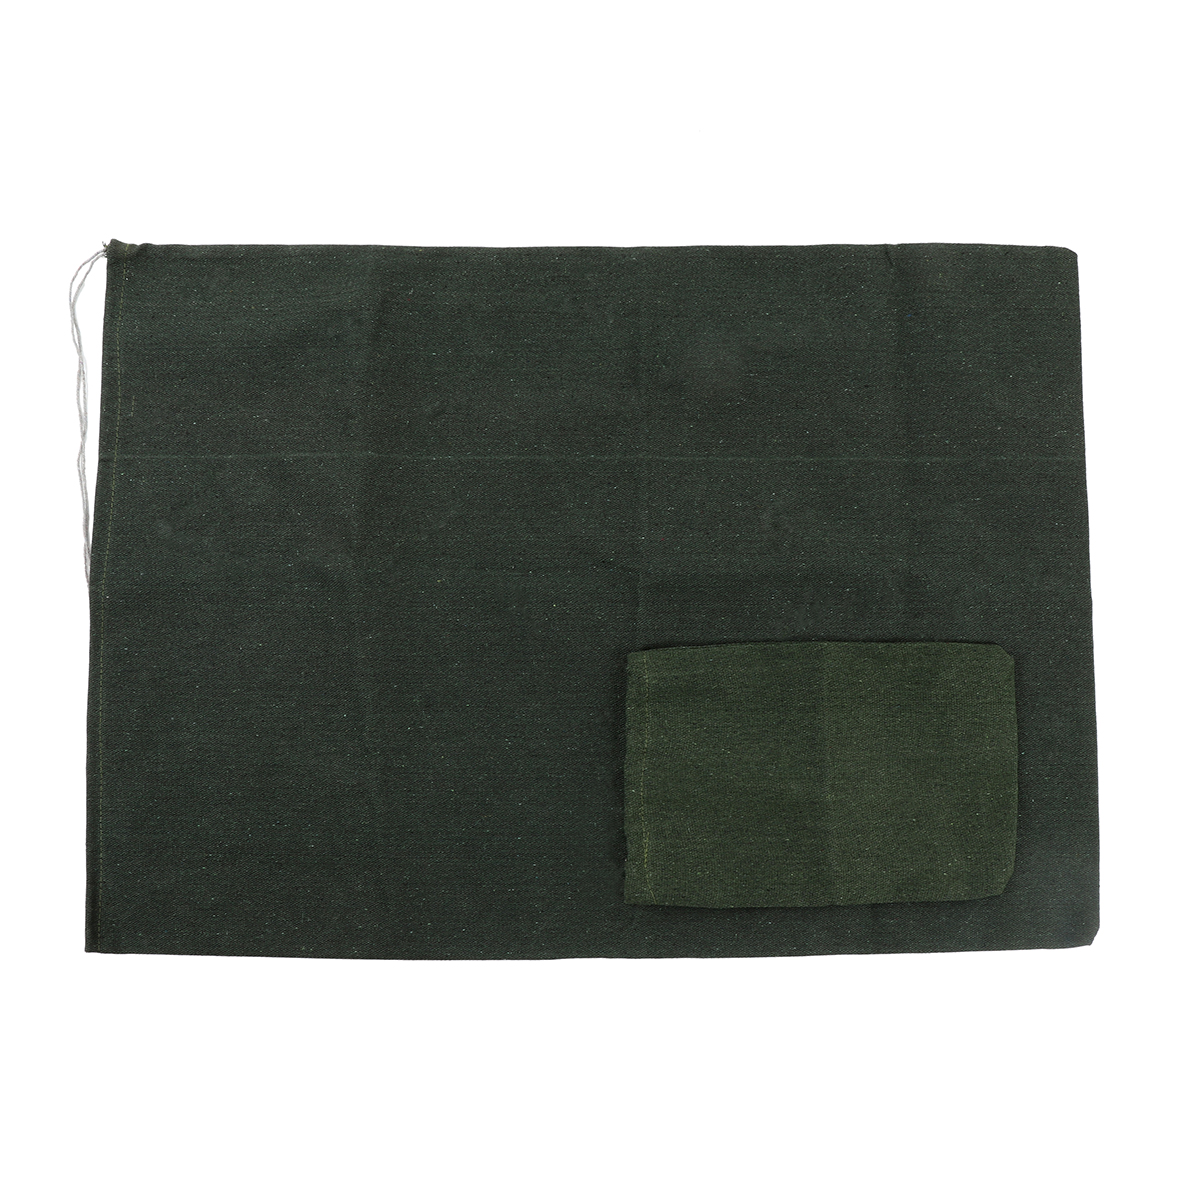 Canvas Drawstring Large Bag Pouch Clothes Dark Green Storage Home Laundry Pack